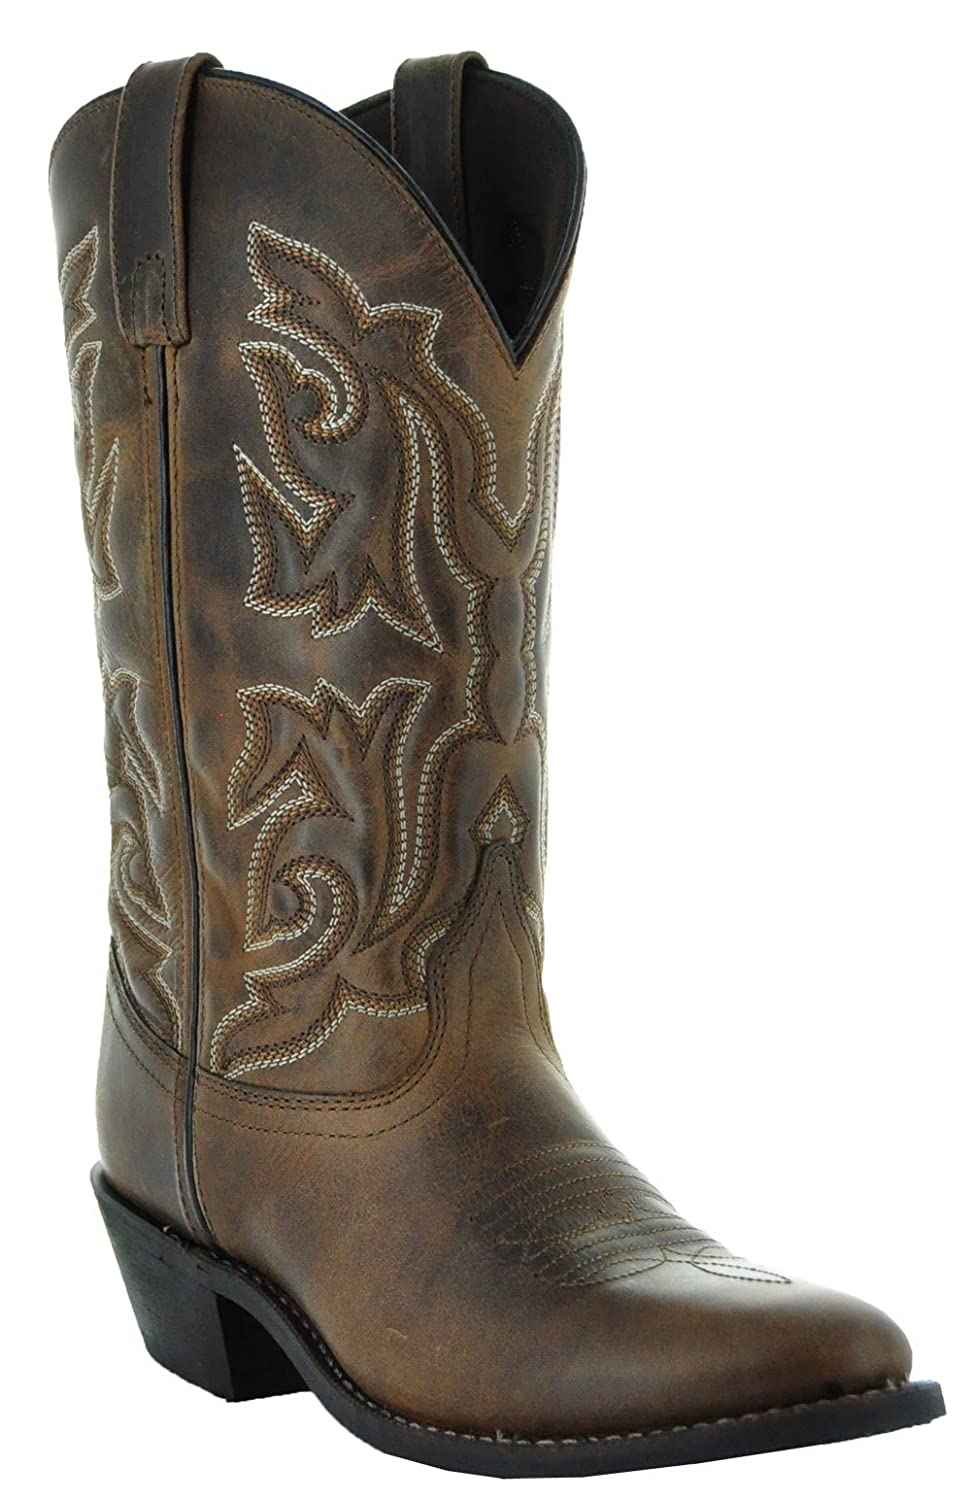 Soto Boots Monterrey Women's Cowgirl Boots by M3001 B075G1DB7N 10 B(M) US|Brown